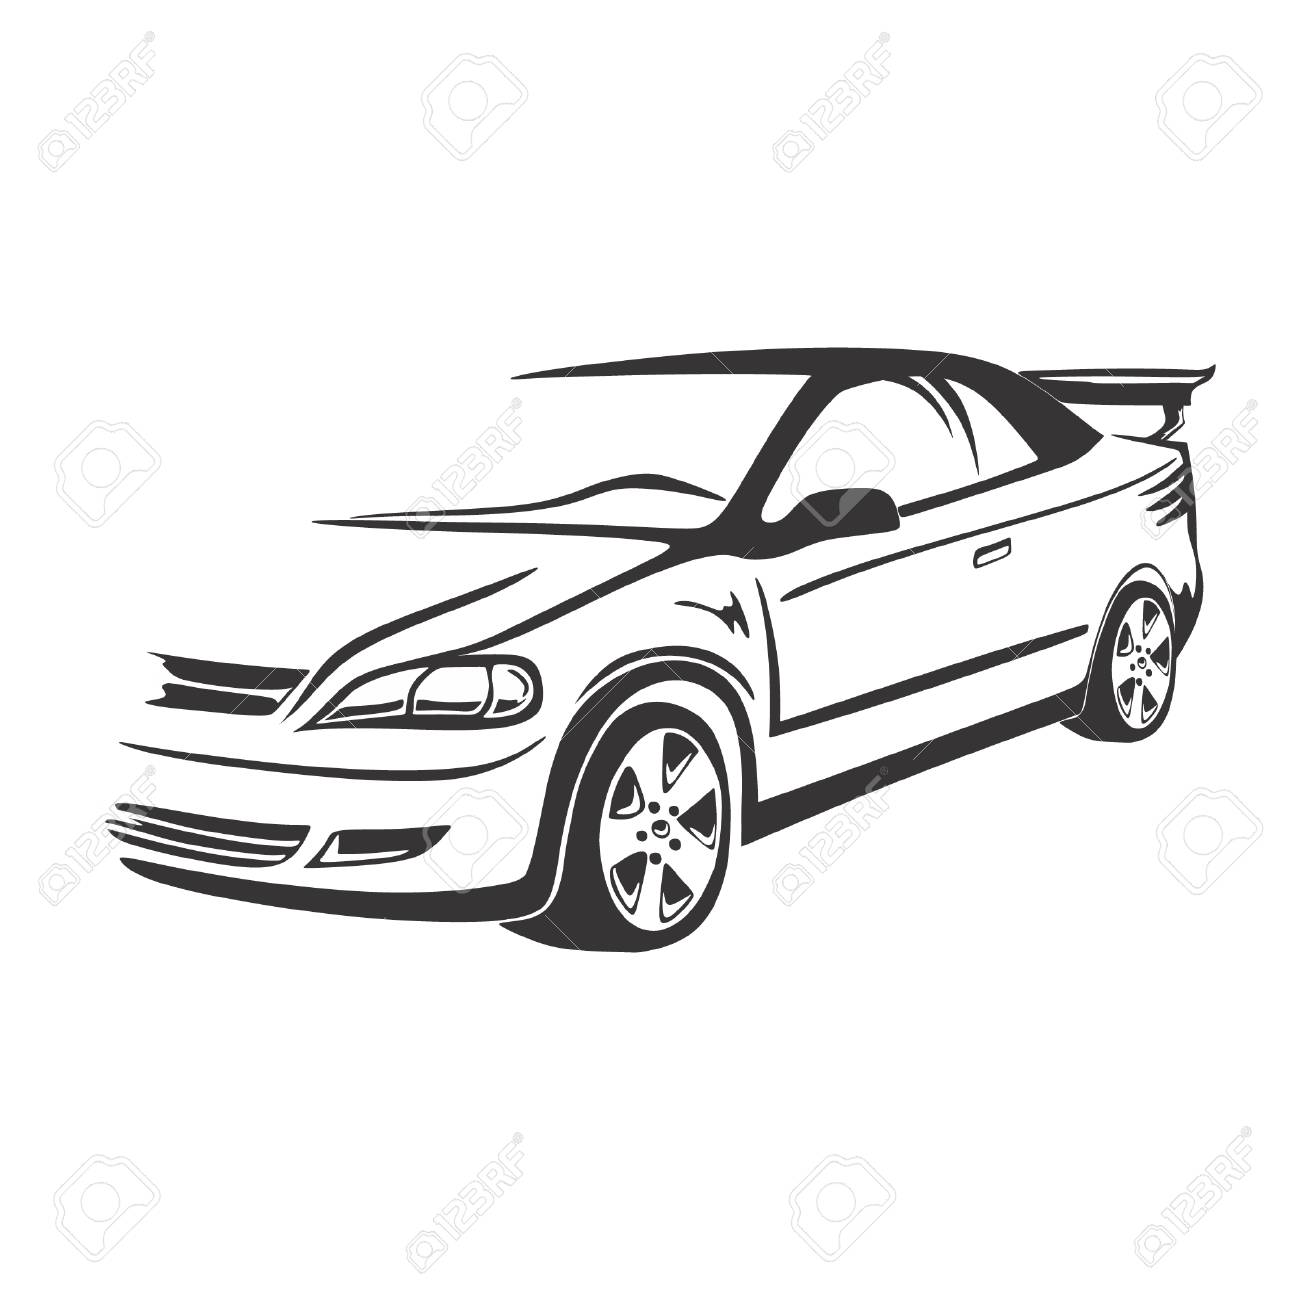 1300x1300 Car Vector Royalty Free Cliparts, Vectors, And Stock Illustration